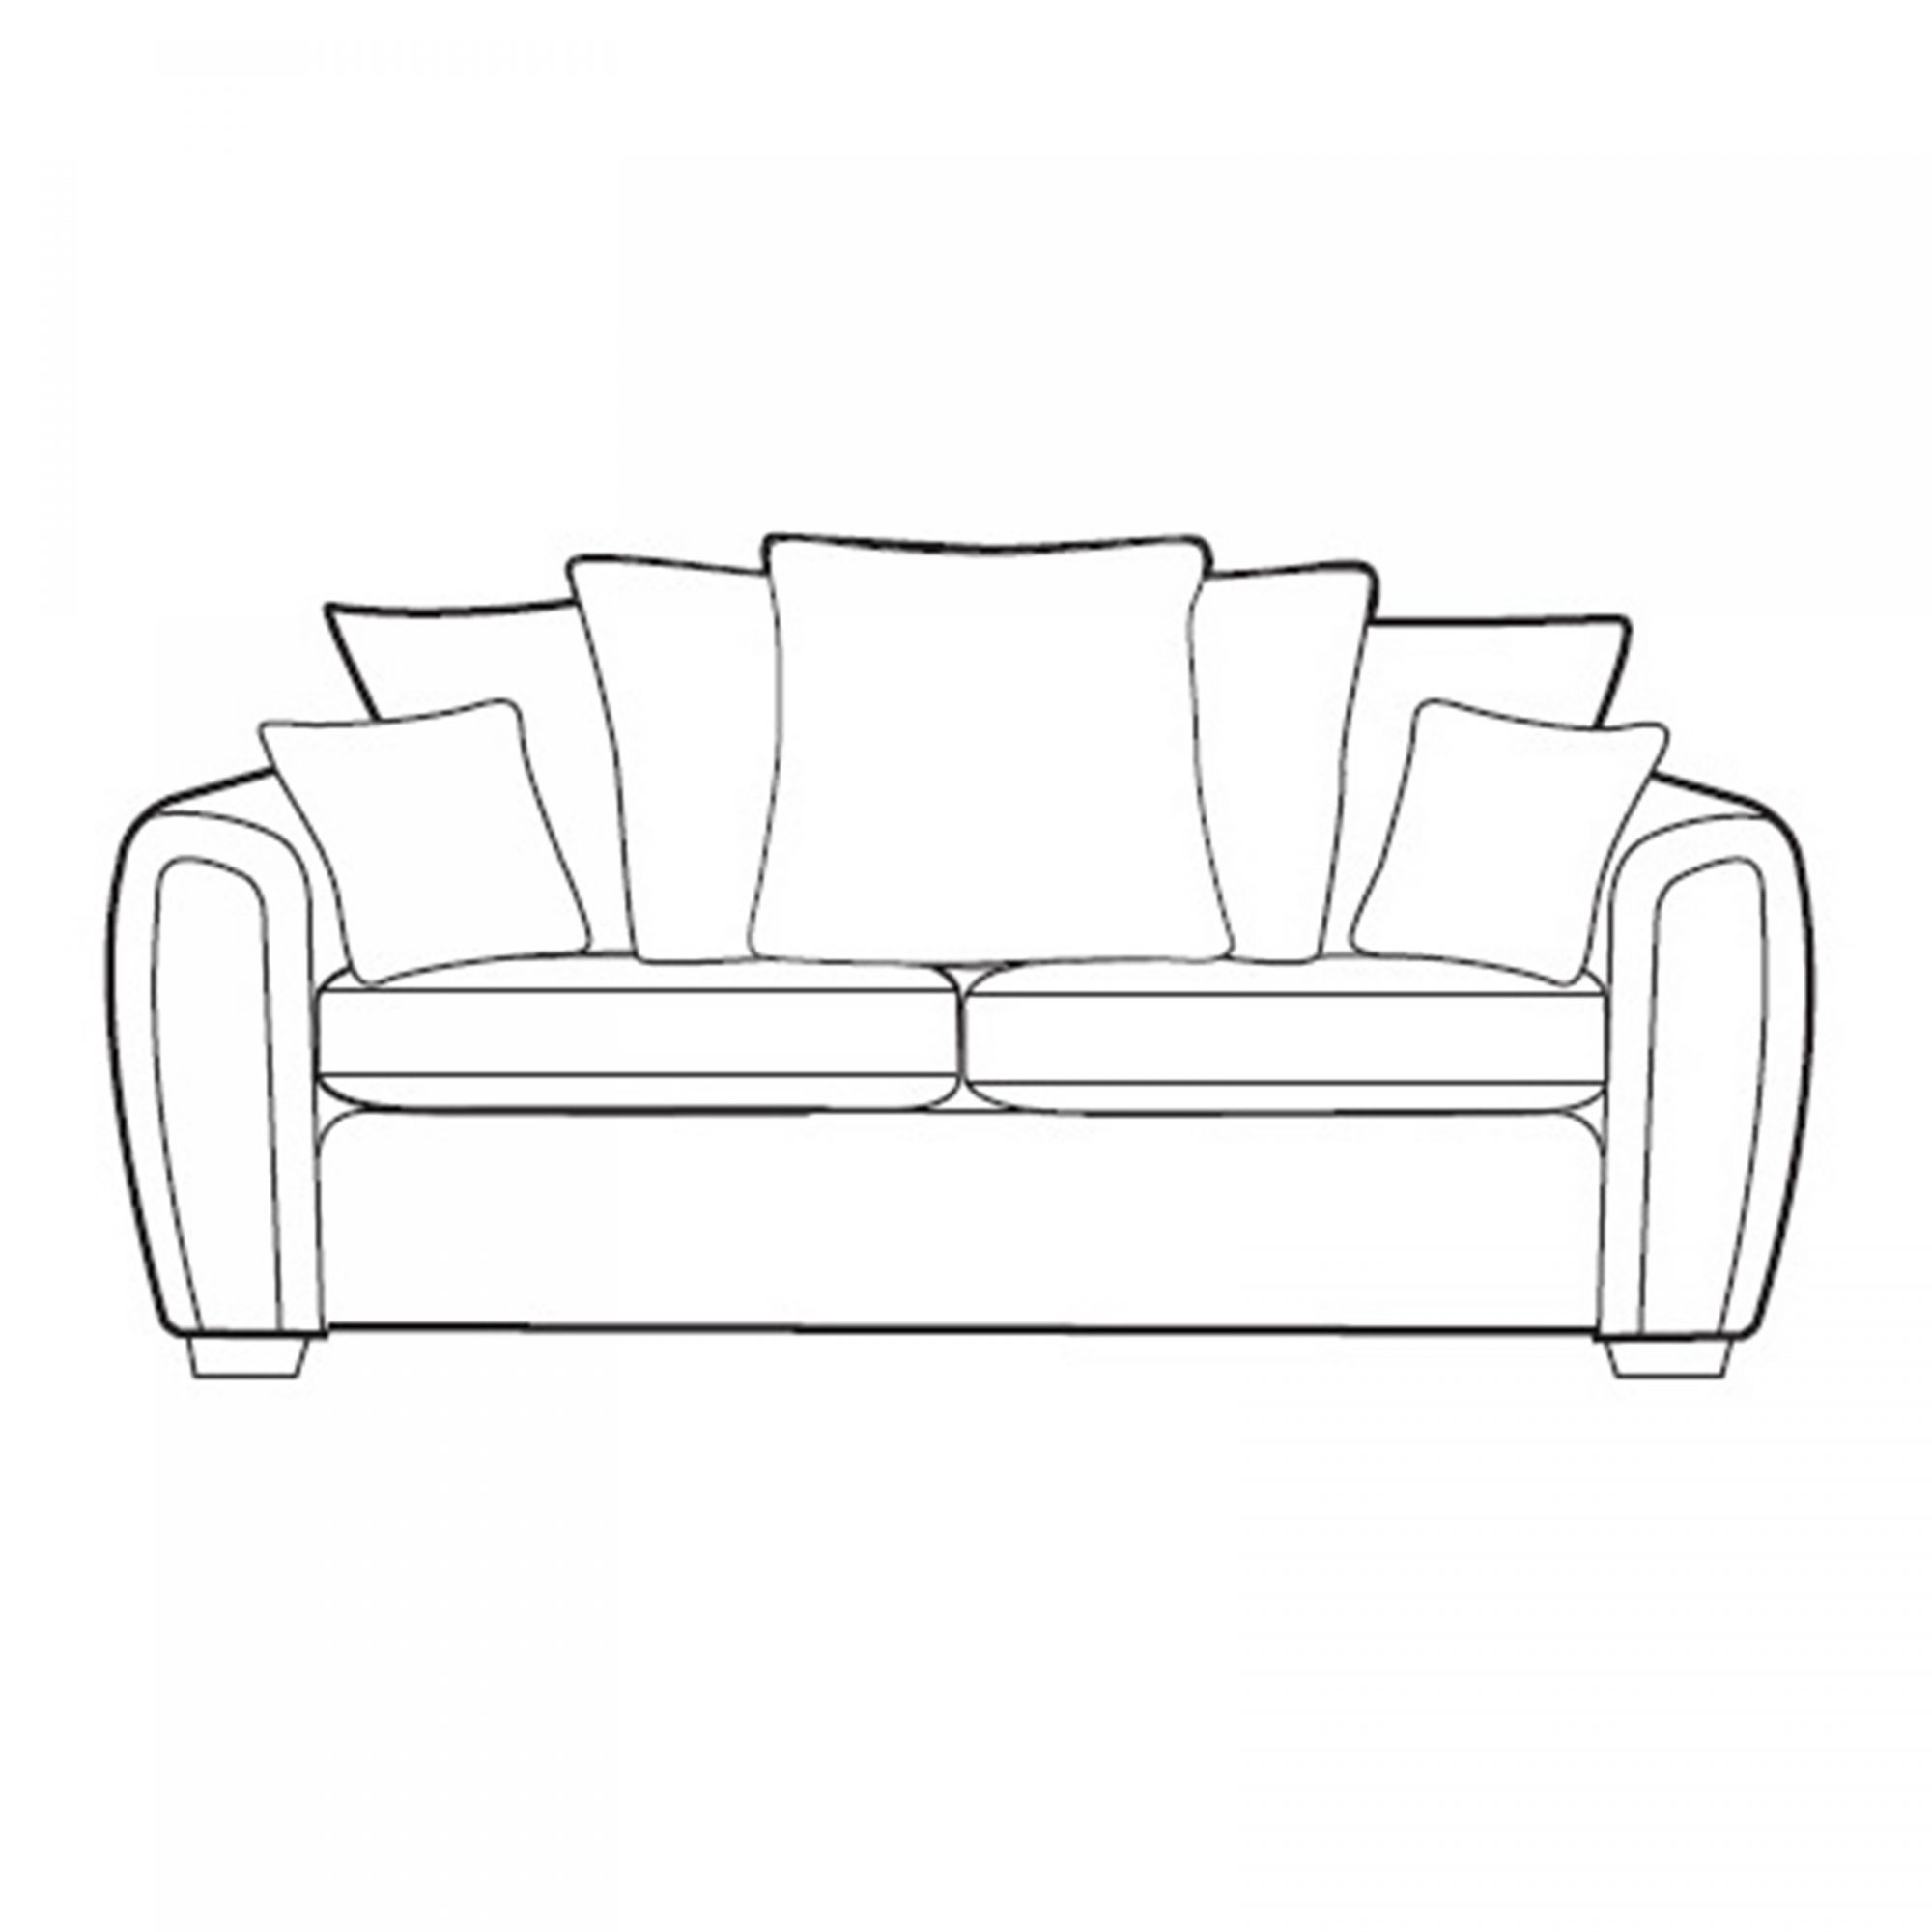 The Best Free Sofa Drawing Images Download From 50 Free Drawings Of